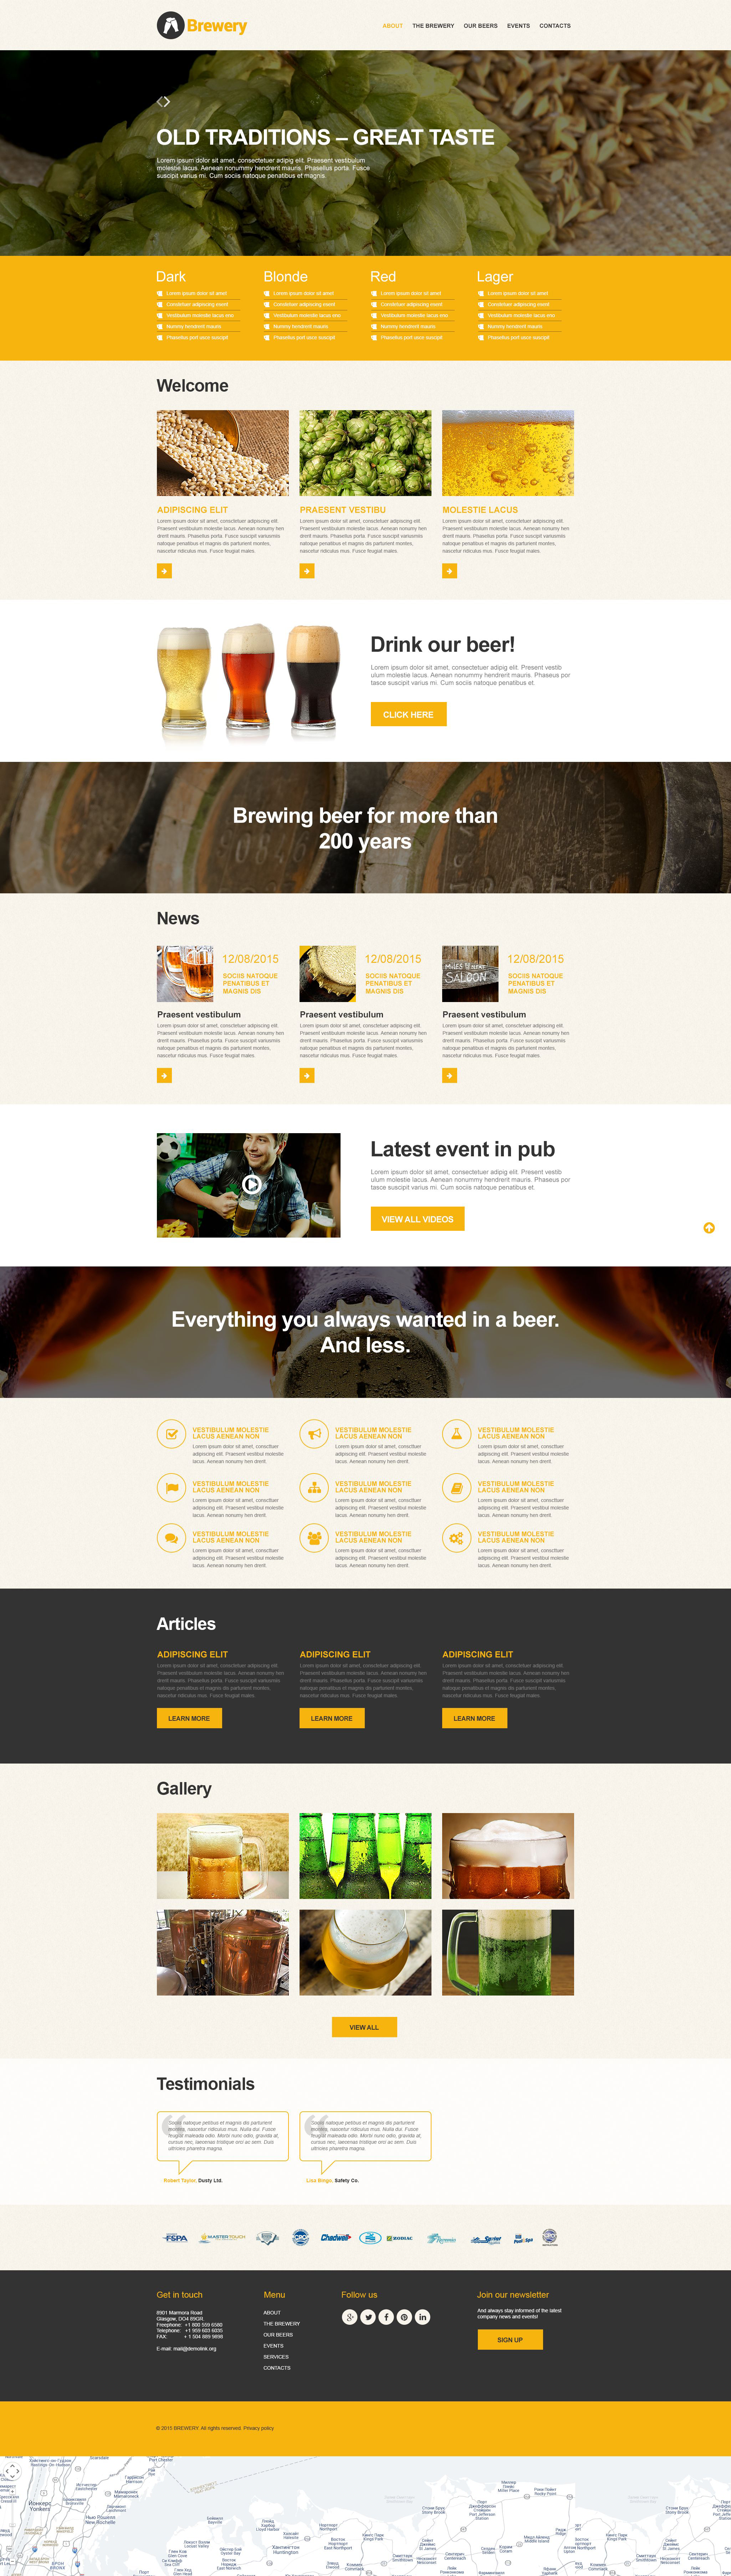 Brewery Muse Template